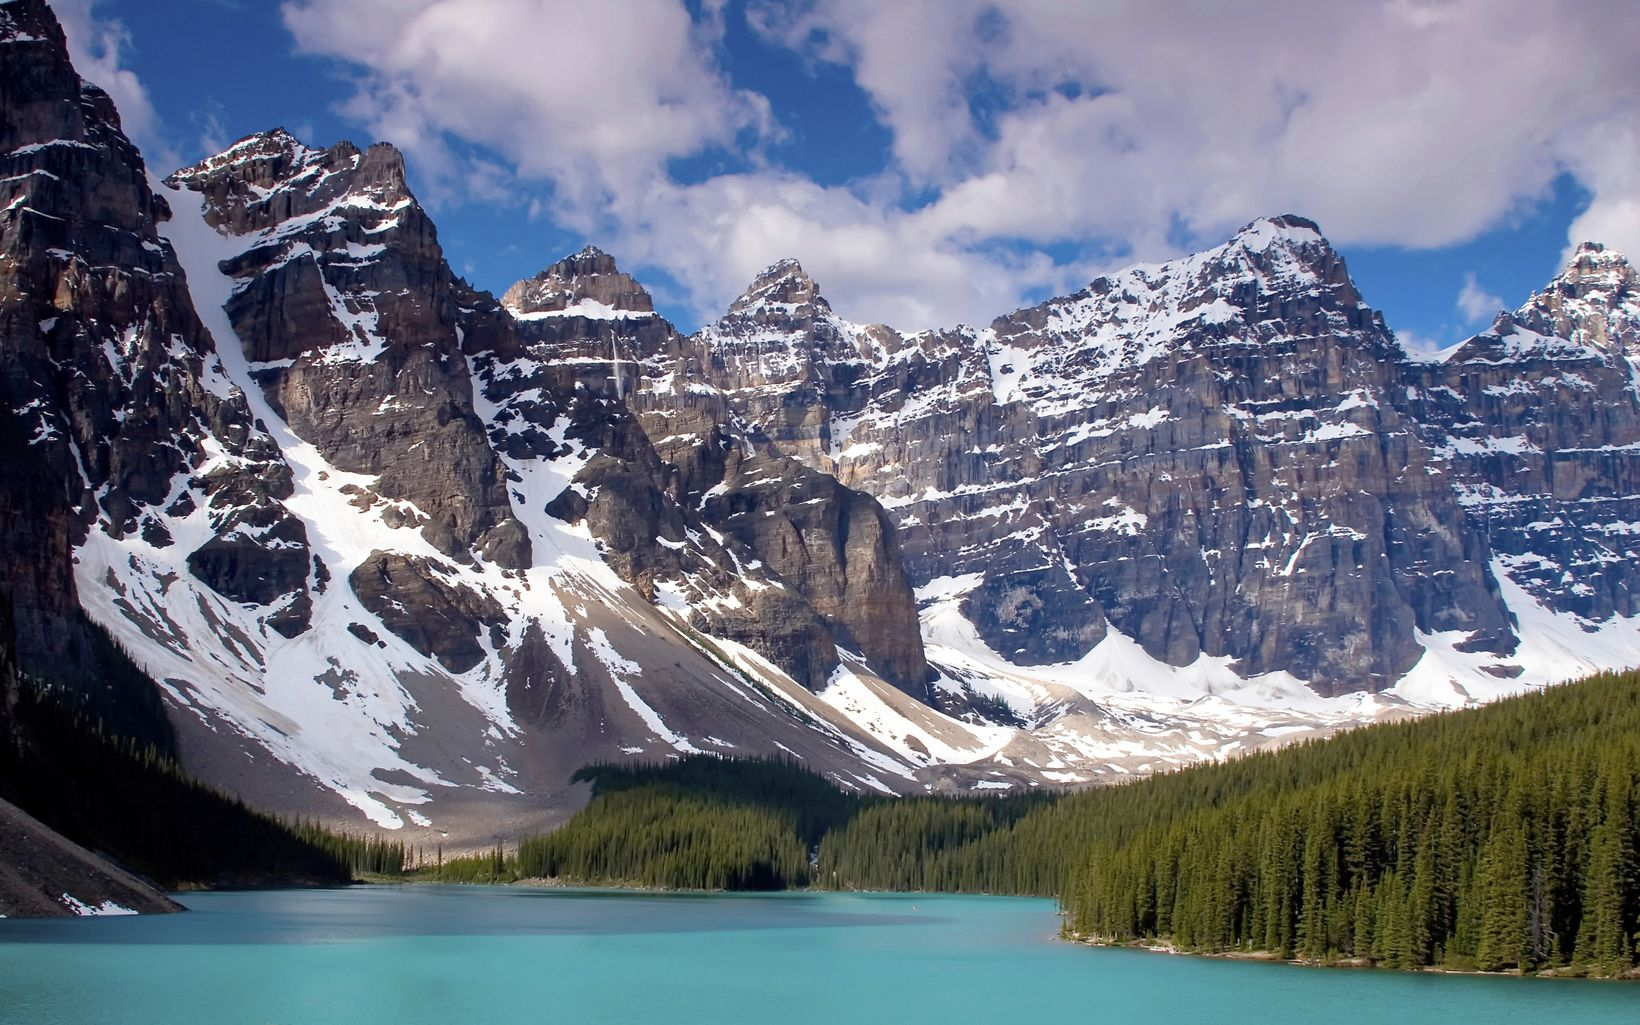 This glacially-fed lake sits among the Ten Peaks Range Banff National Park in Alberta, Canada.